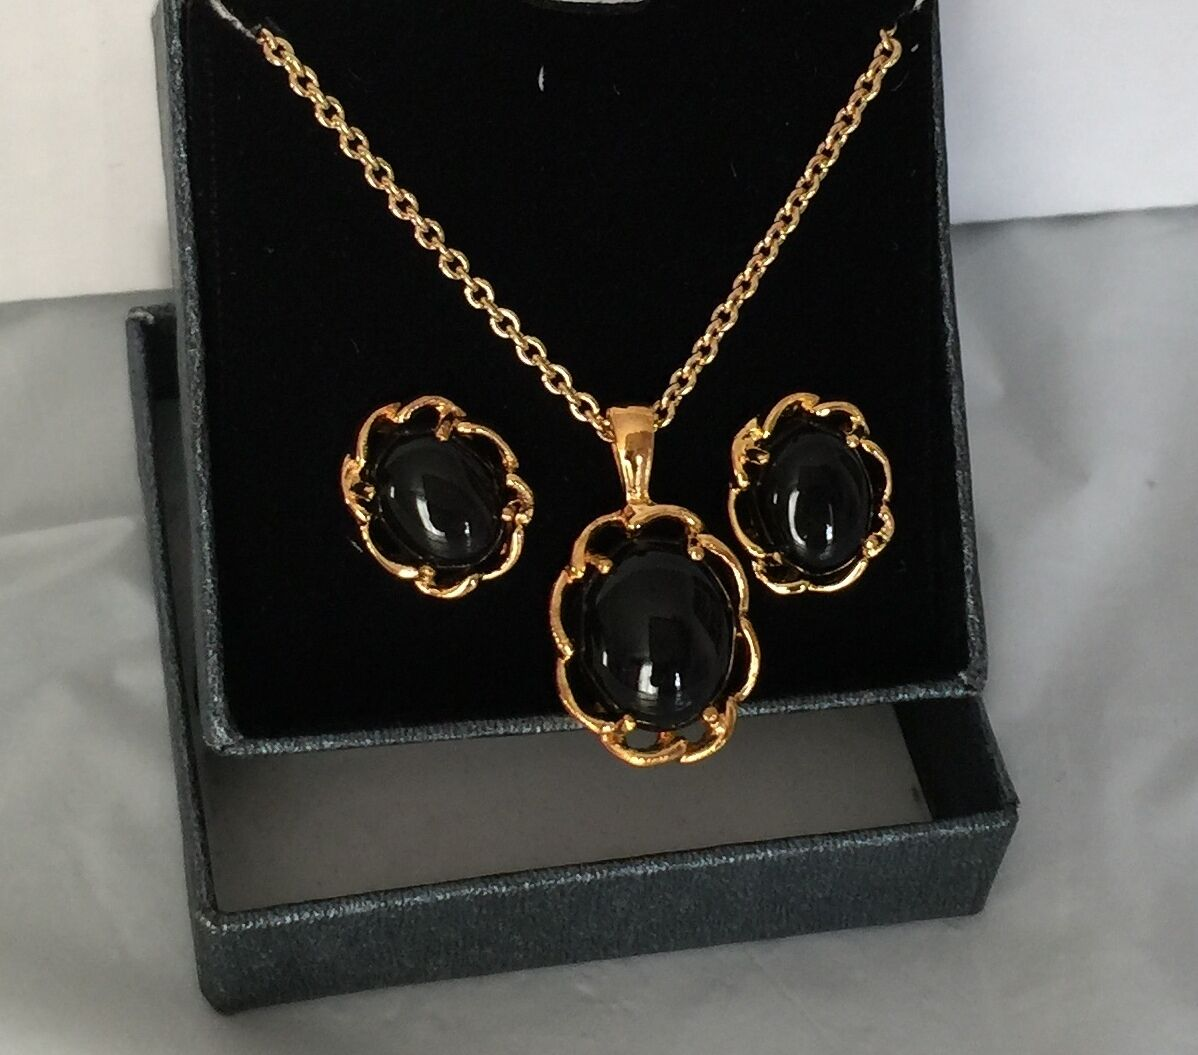 Qvc Gold Plated Black Onyx Earrings And Pendant Set 14k